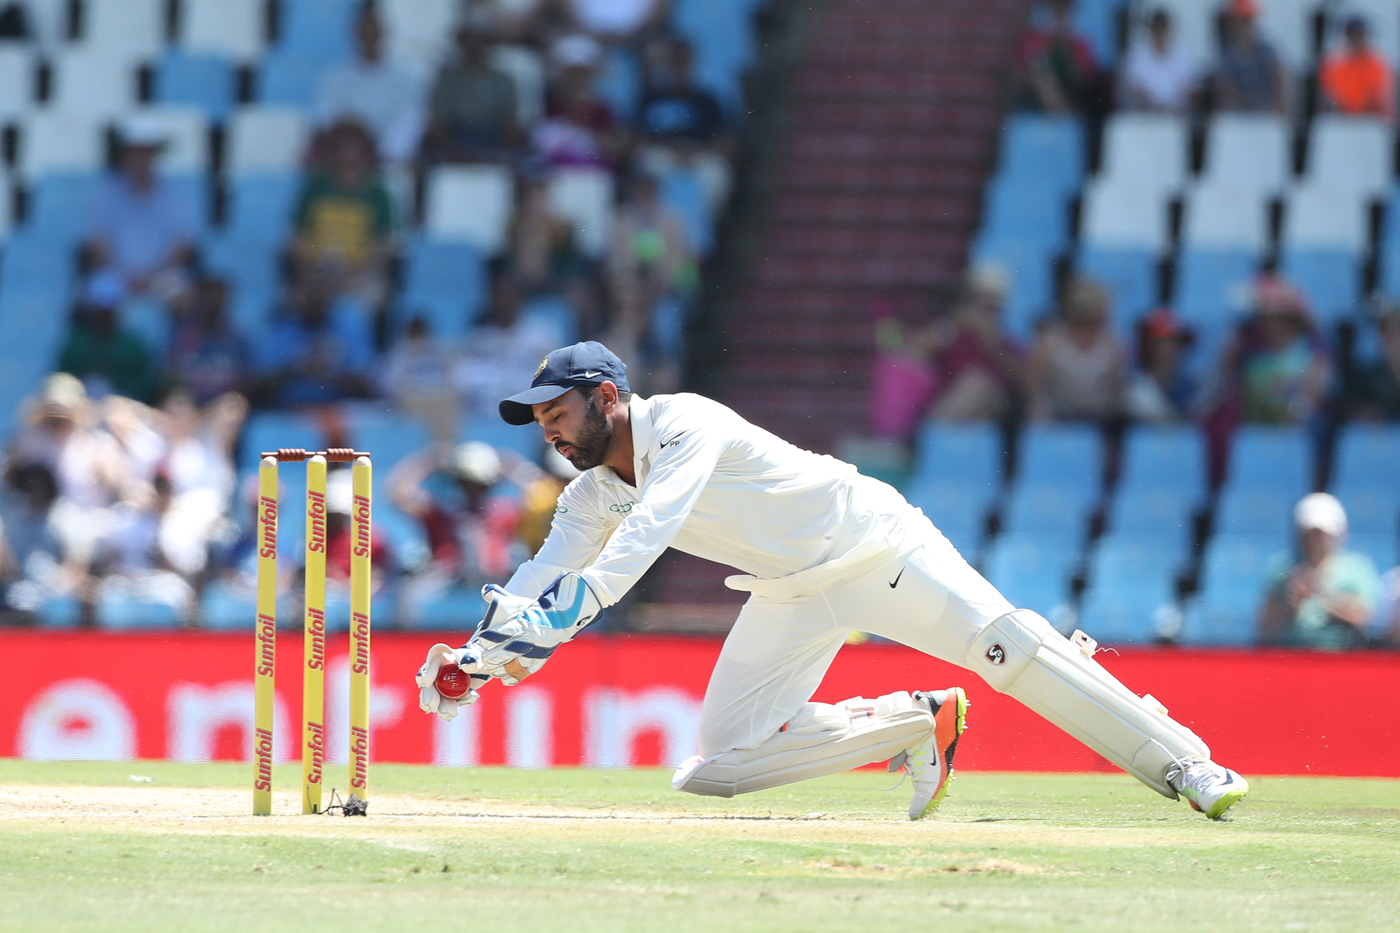 SA vs IND 2018: Wriddhiman Saha Ruled Out of Series; Dinesh Karthik Named as Replacement